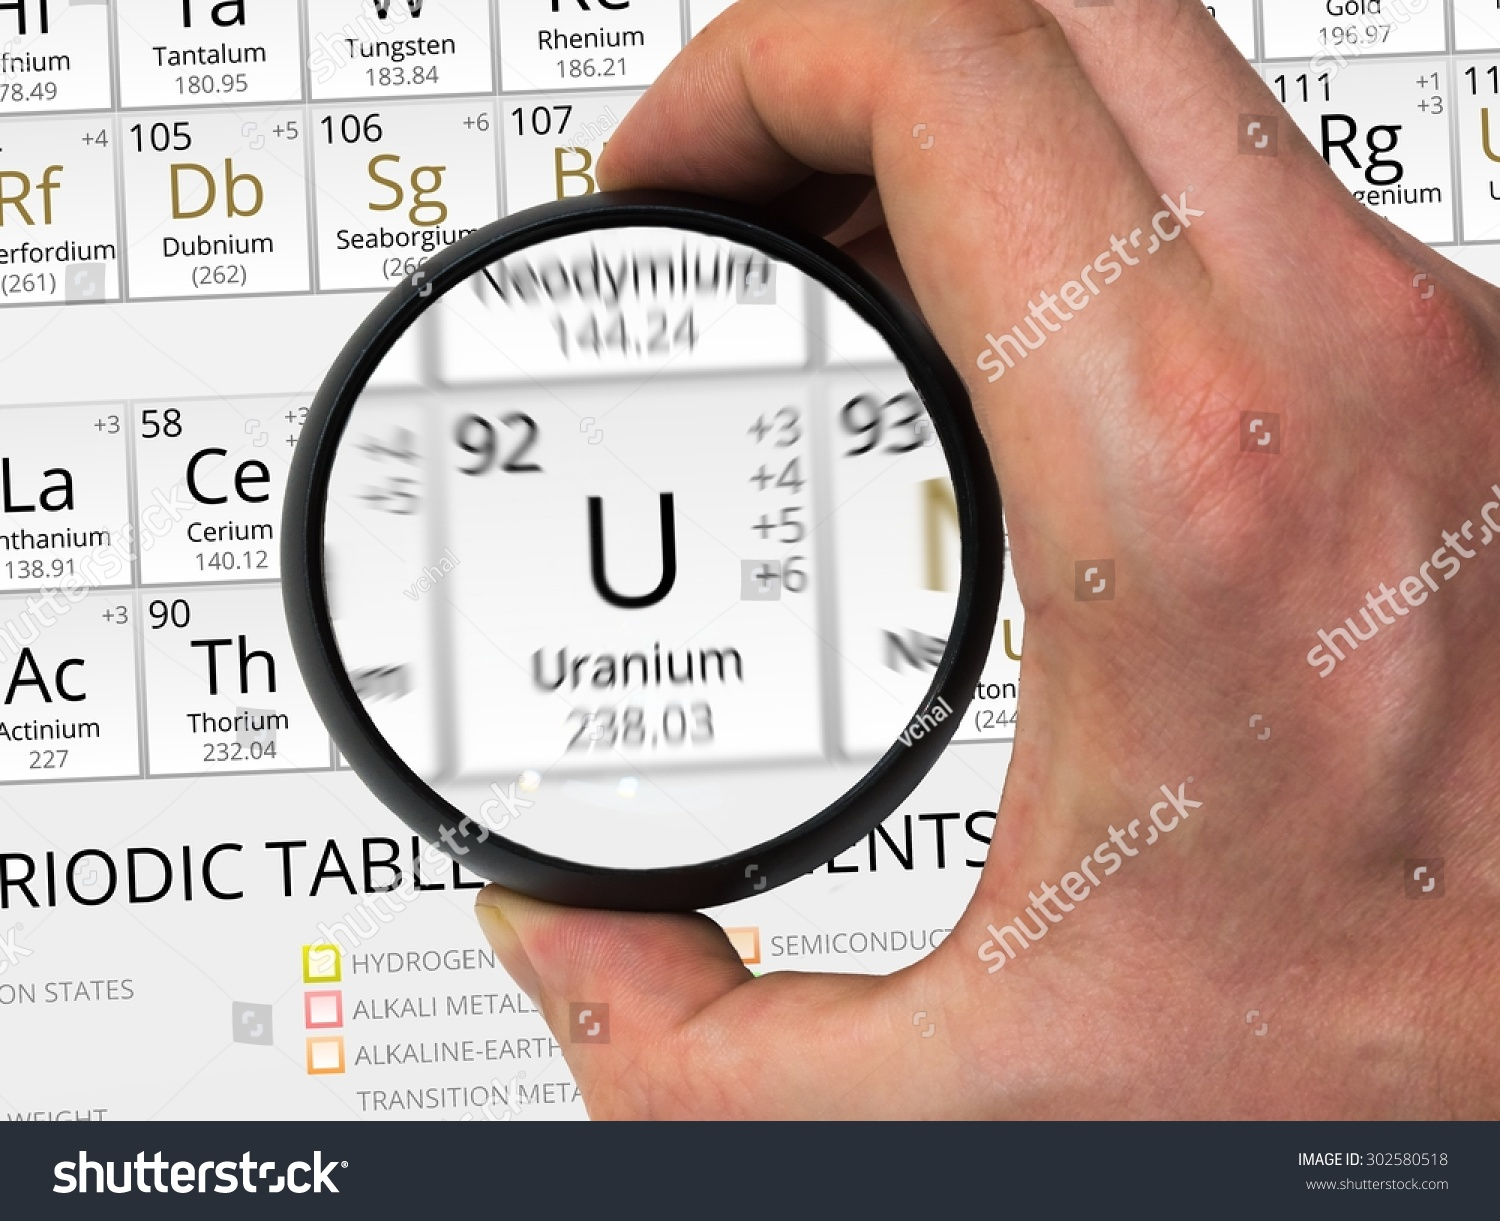 Uranium symbol periodic table images periodic table images uranium symbol u element periodic table stock photo 302580518 uranium symbol u element of the periodic gamestrikefo Image collections